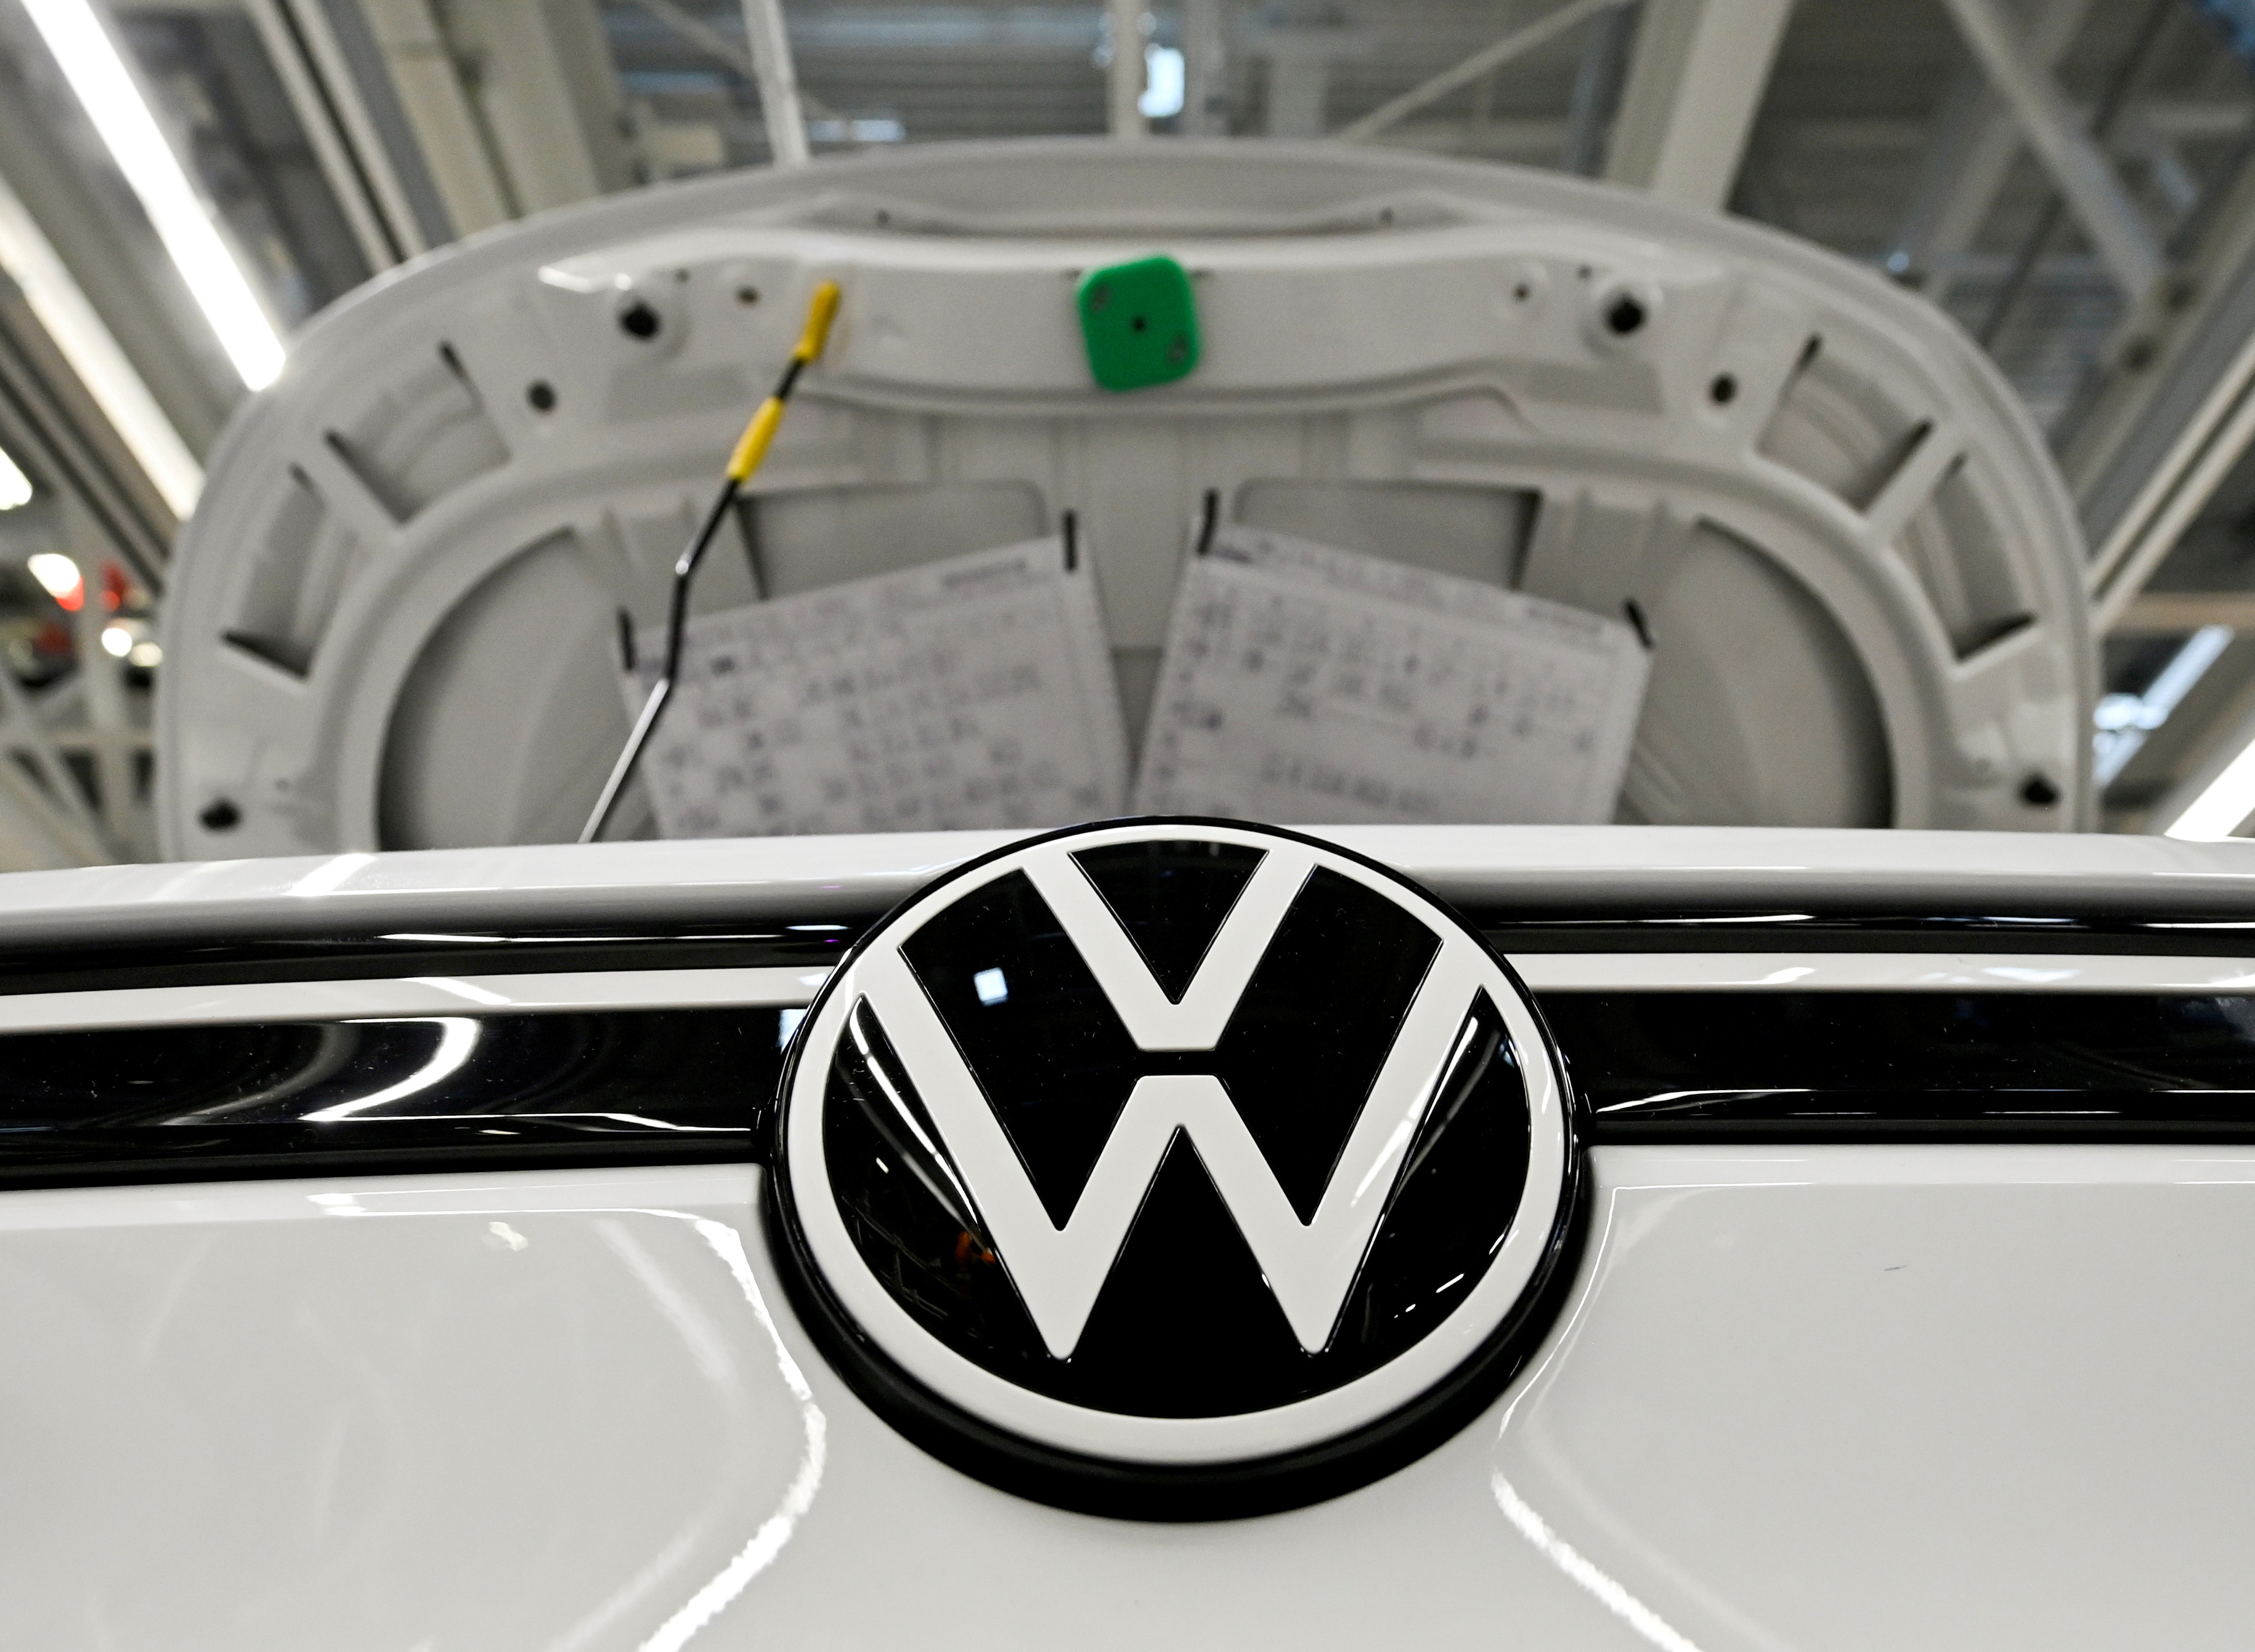 A car stands at the production line for the electric Volkswagen cars, model ID.3 and model ID. 4, in Zwickau, Germany, September 18, 2020. REUTERS/Matthias Rietschel